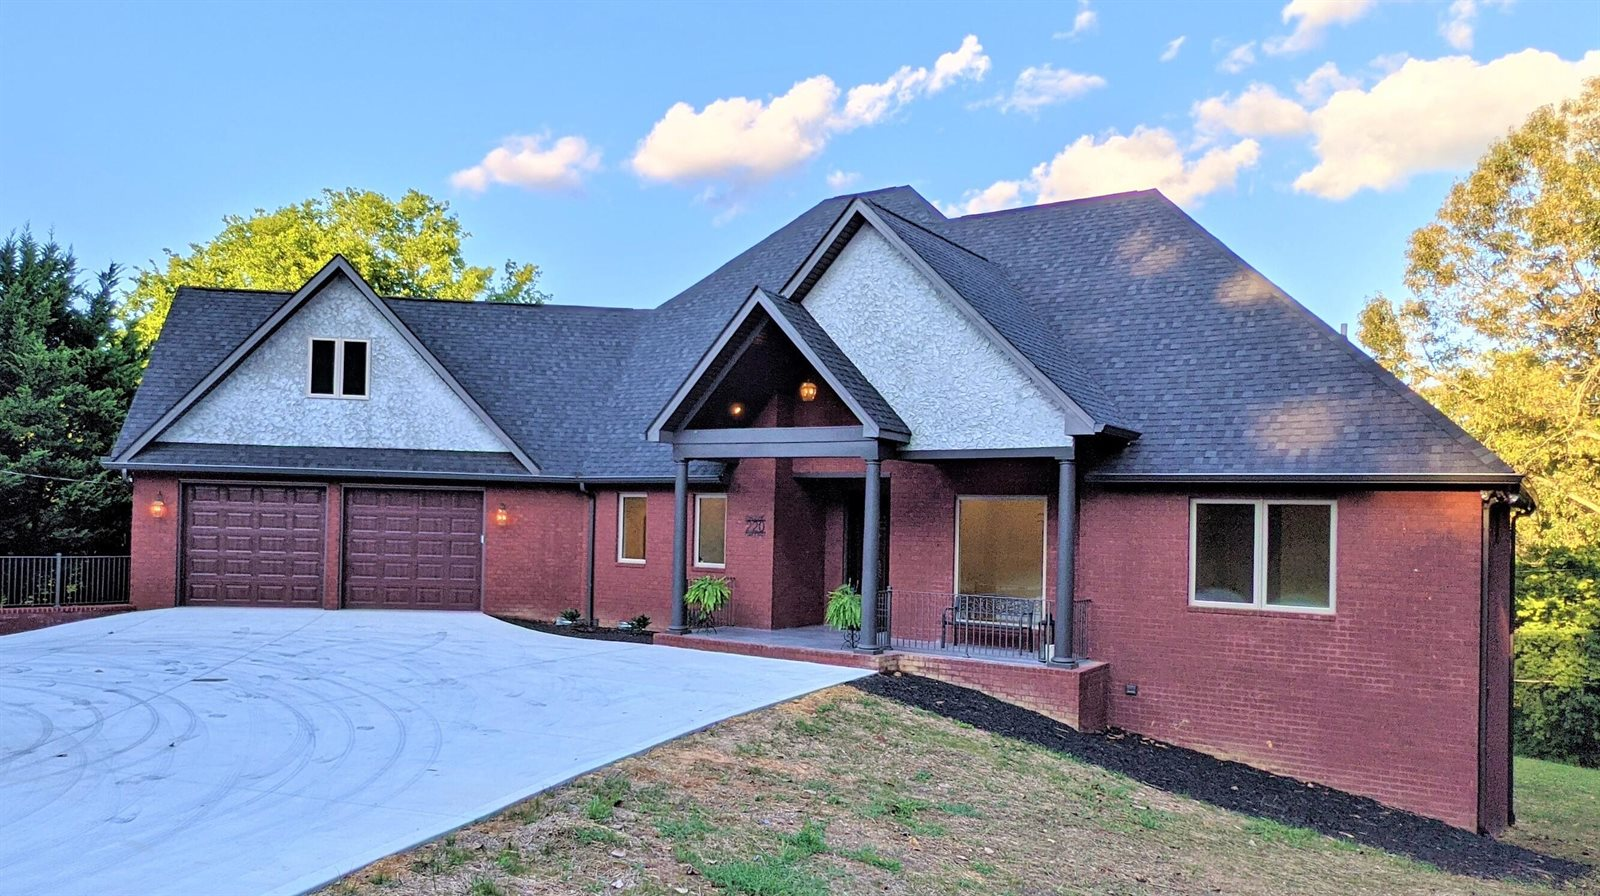 220 Golf Club Rd, Knoxville, TN 37919